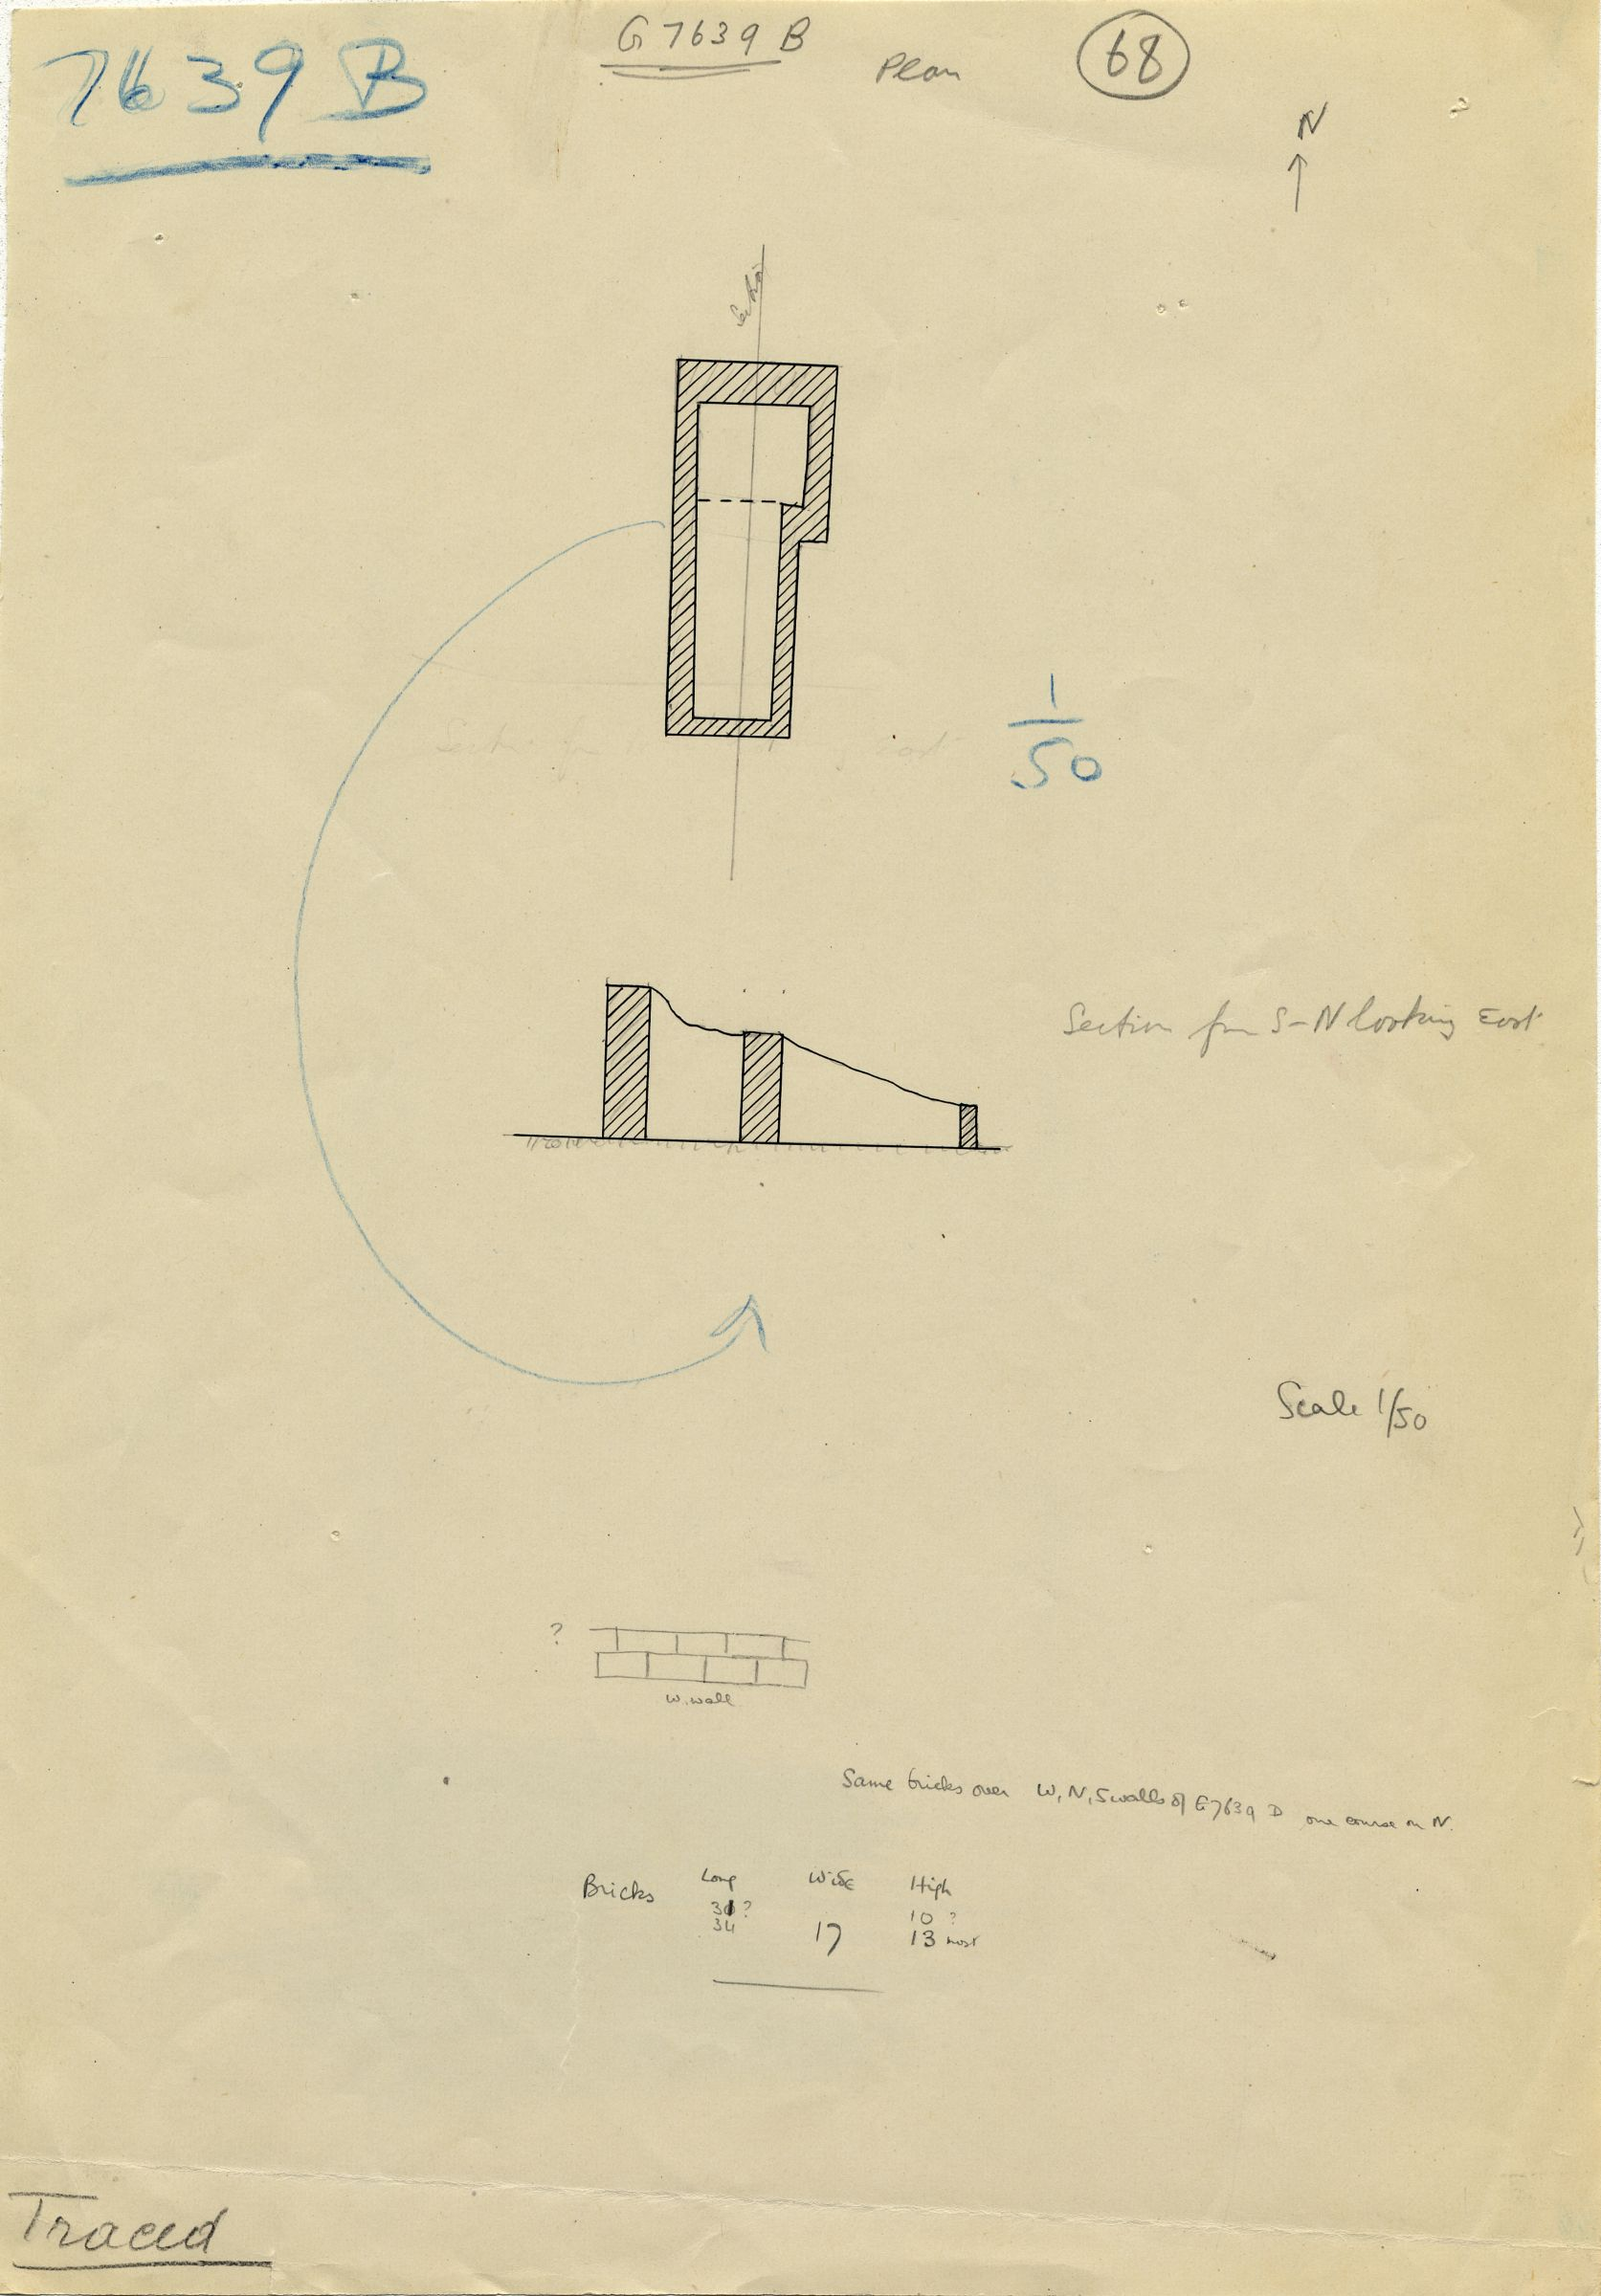 Maps and plans: G 7639, Shaft B